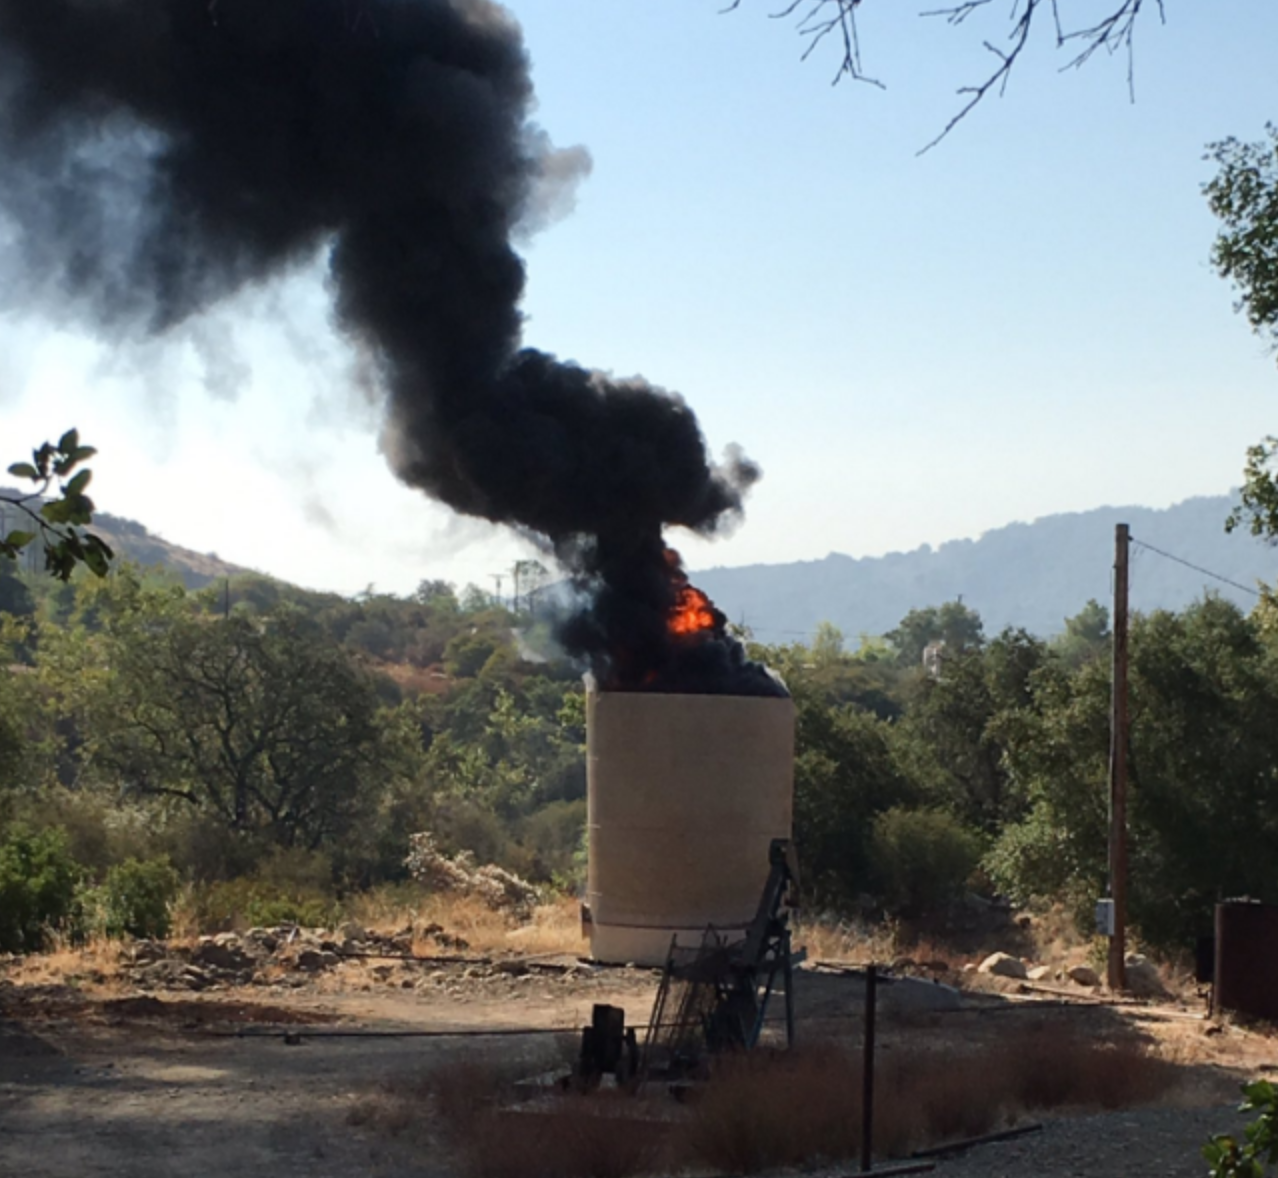 Ojai oil tank on fire, August 5, 2016.  Photo by Captain Mike Lindbery, Ventura County Fire Department.